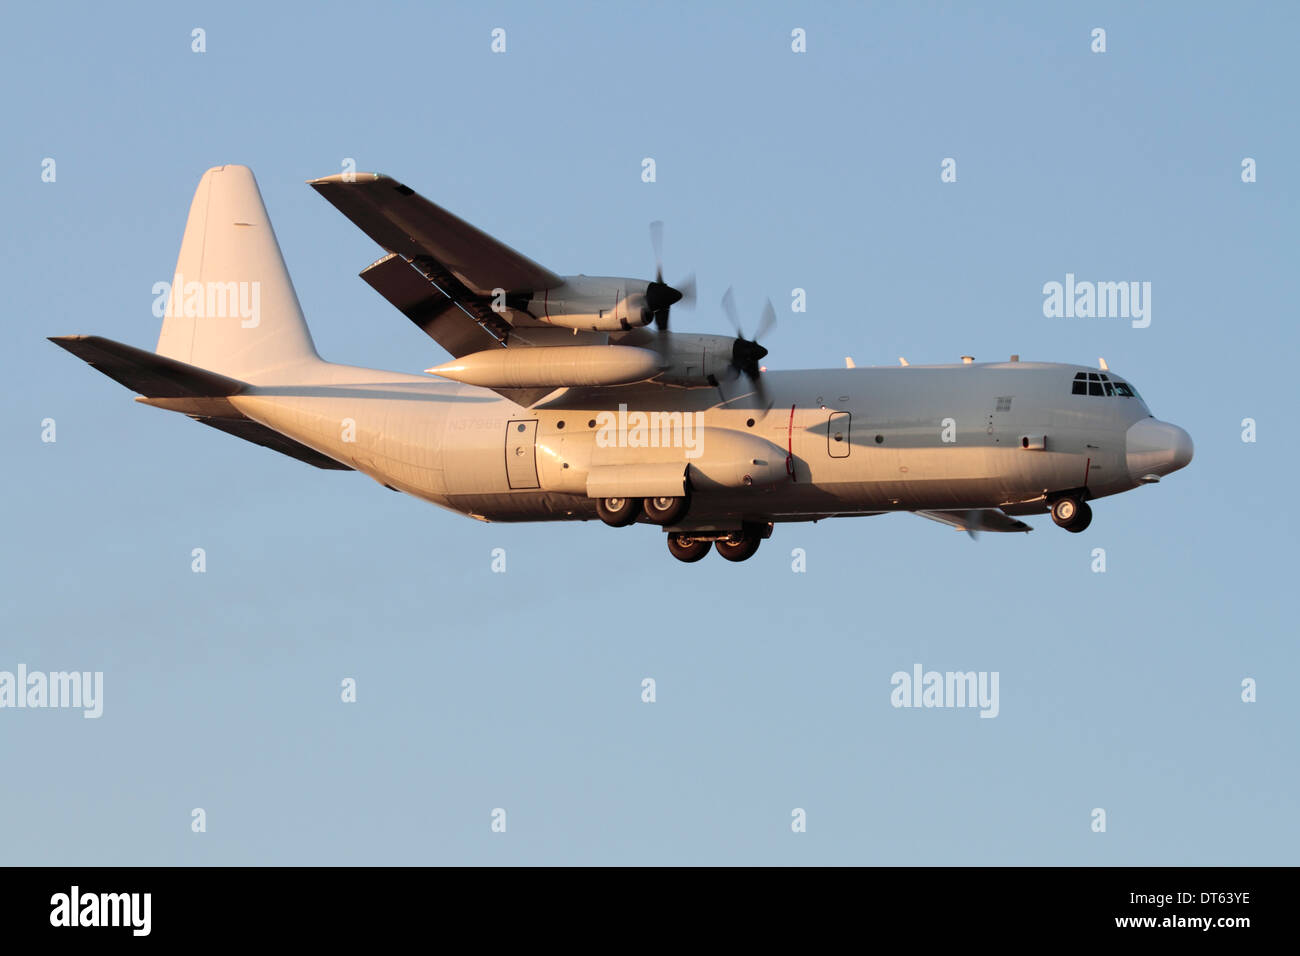 Civil-registered Lockheed L-100-30 Hercules cargo plane on final approach - Stock Image